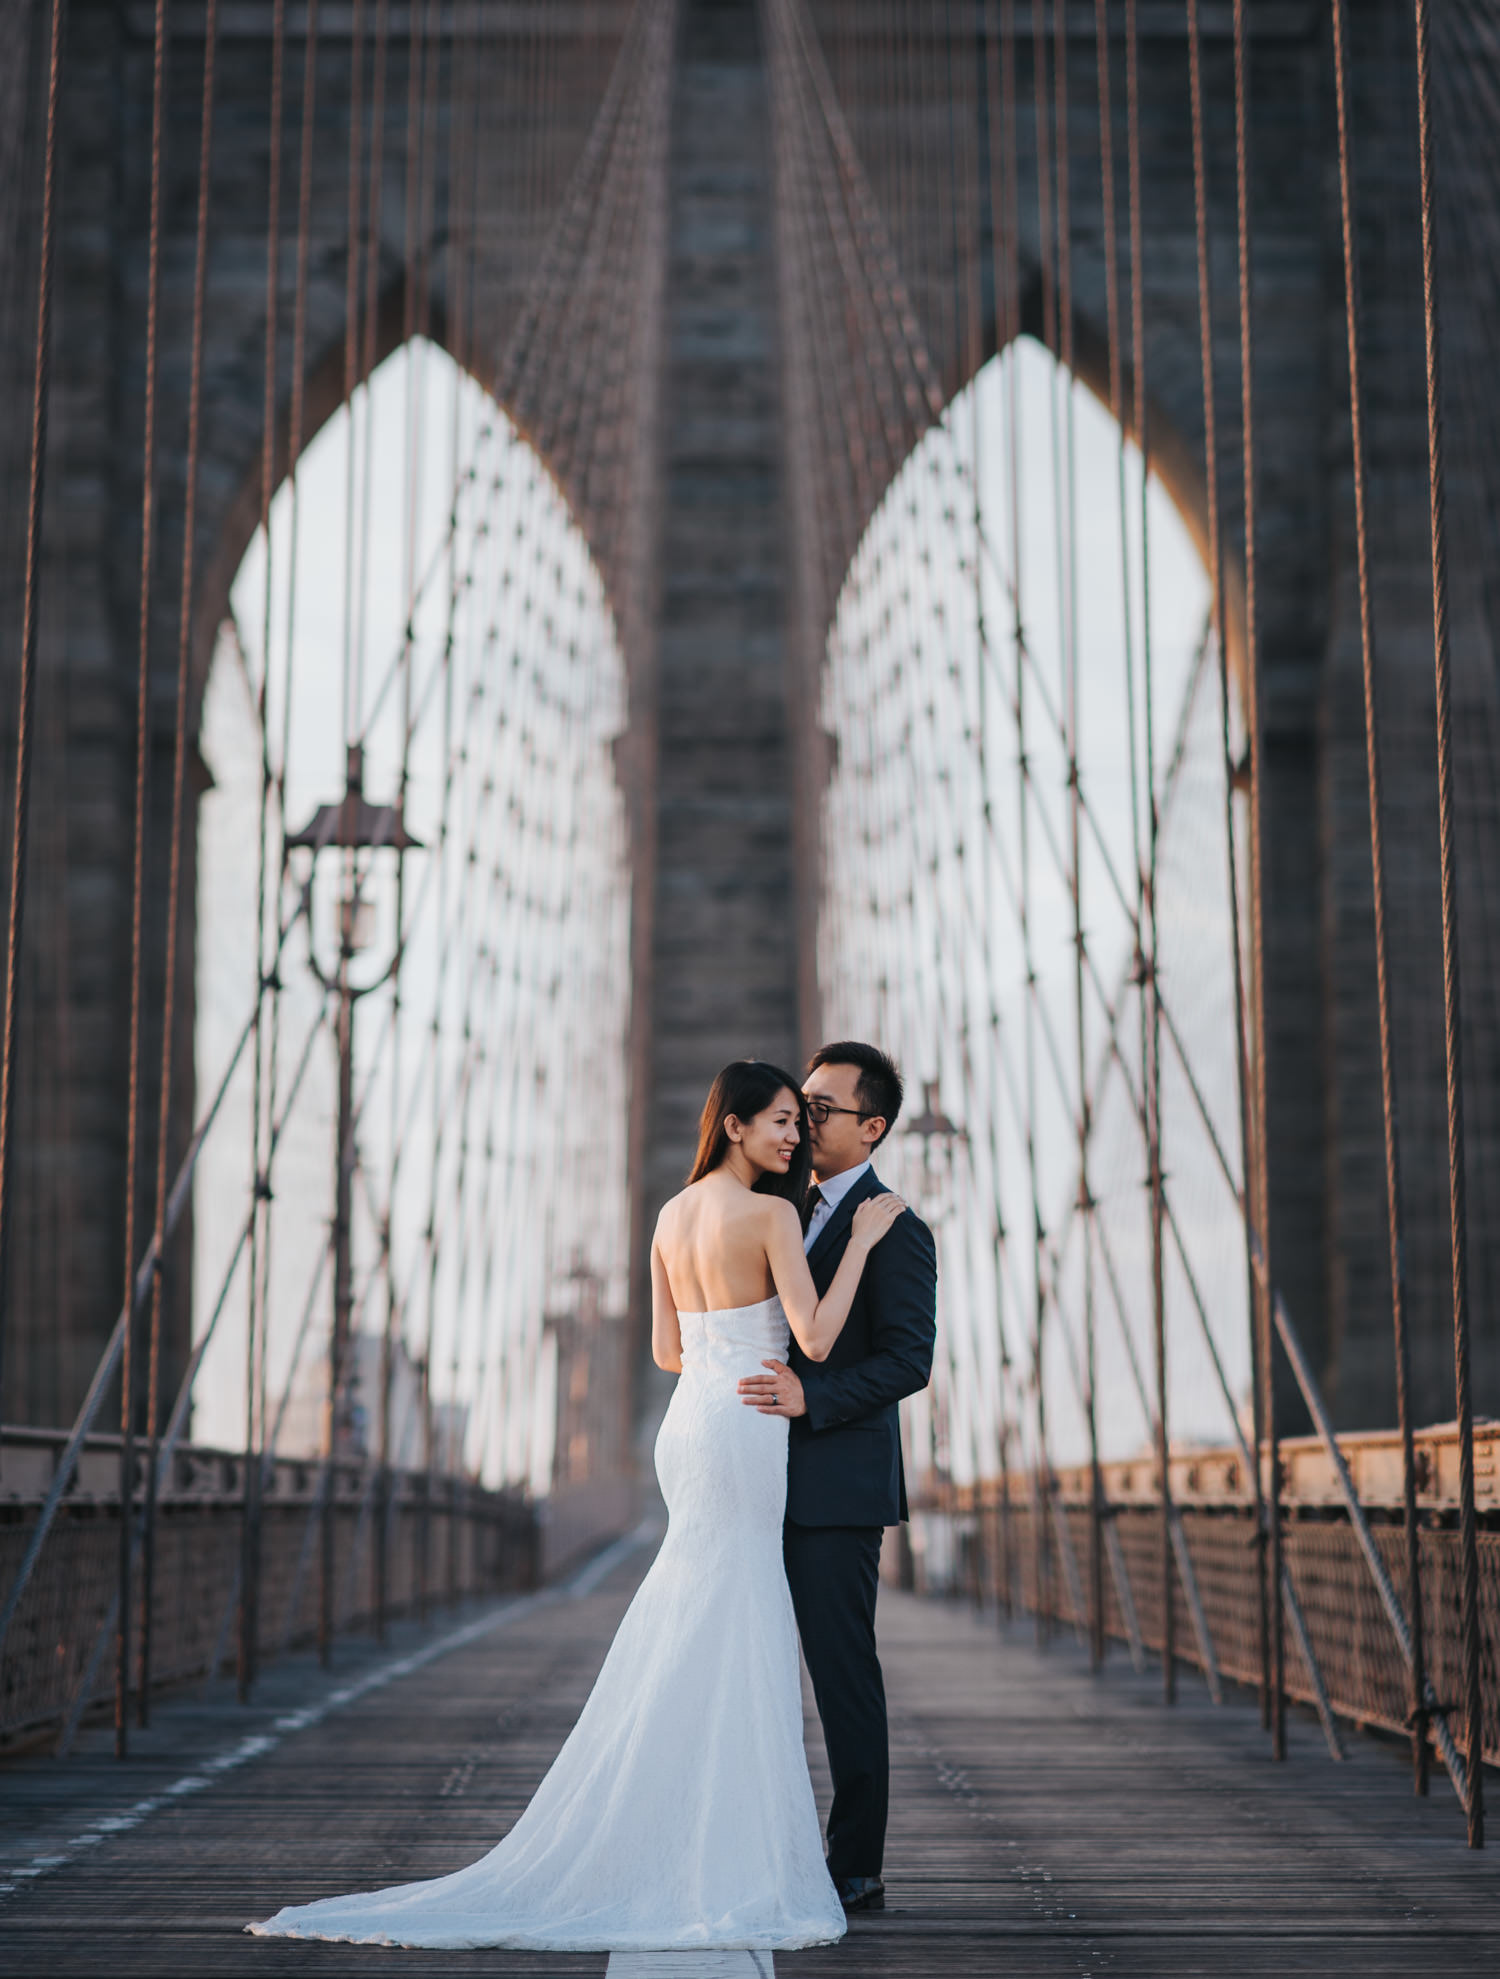 New York Engagement Photography at the Brooklyn Bridge